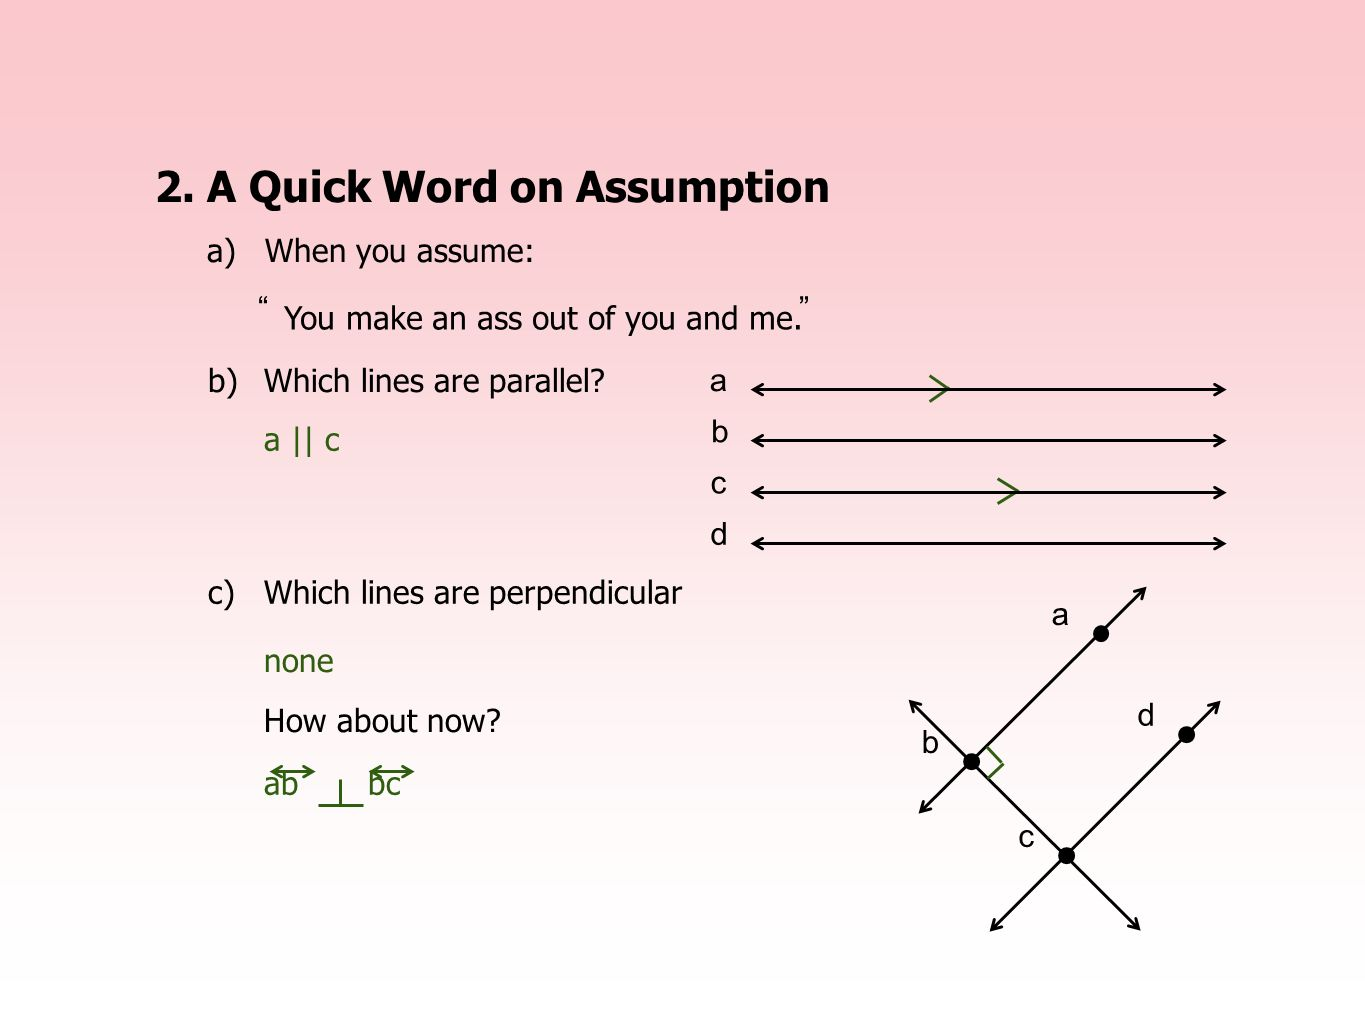 2. A Quick Word on Assumption